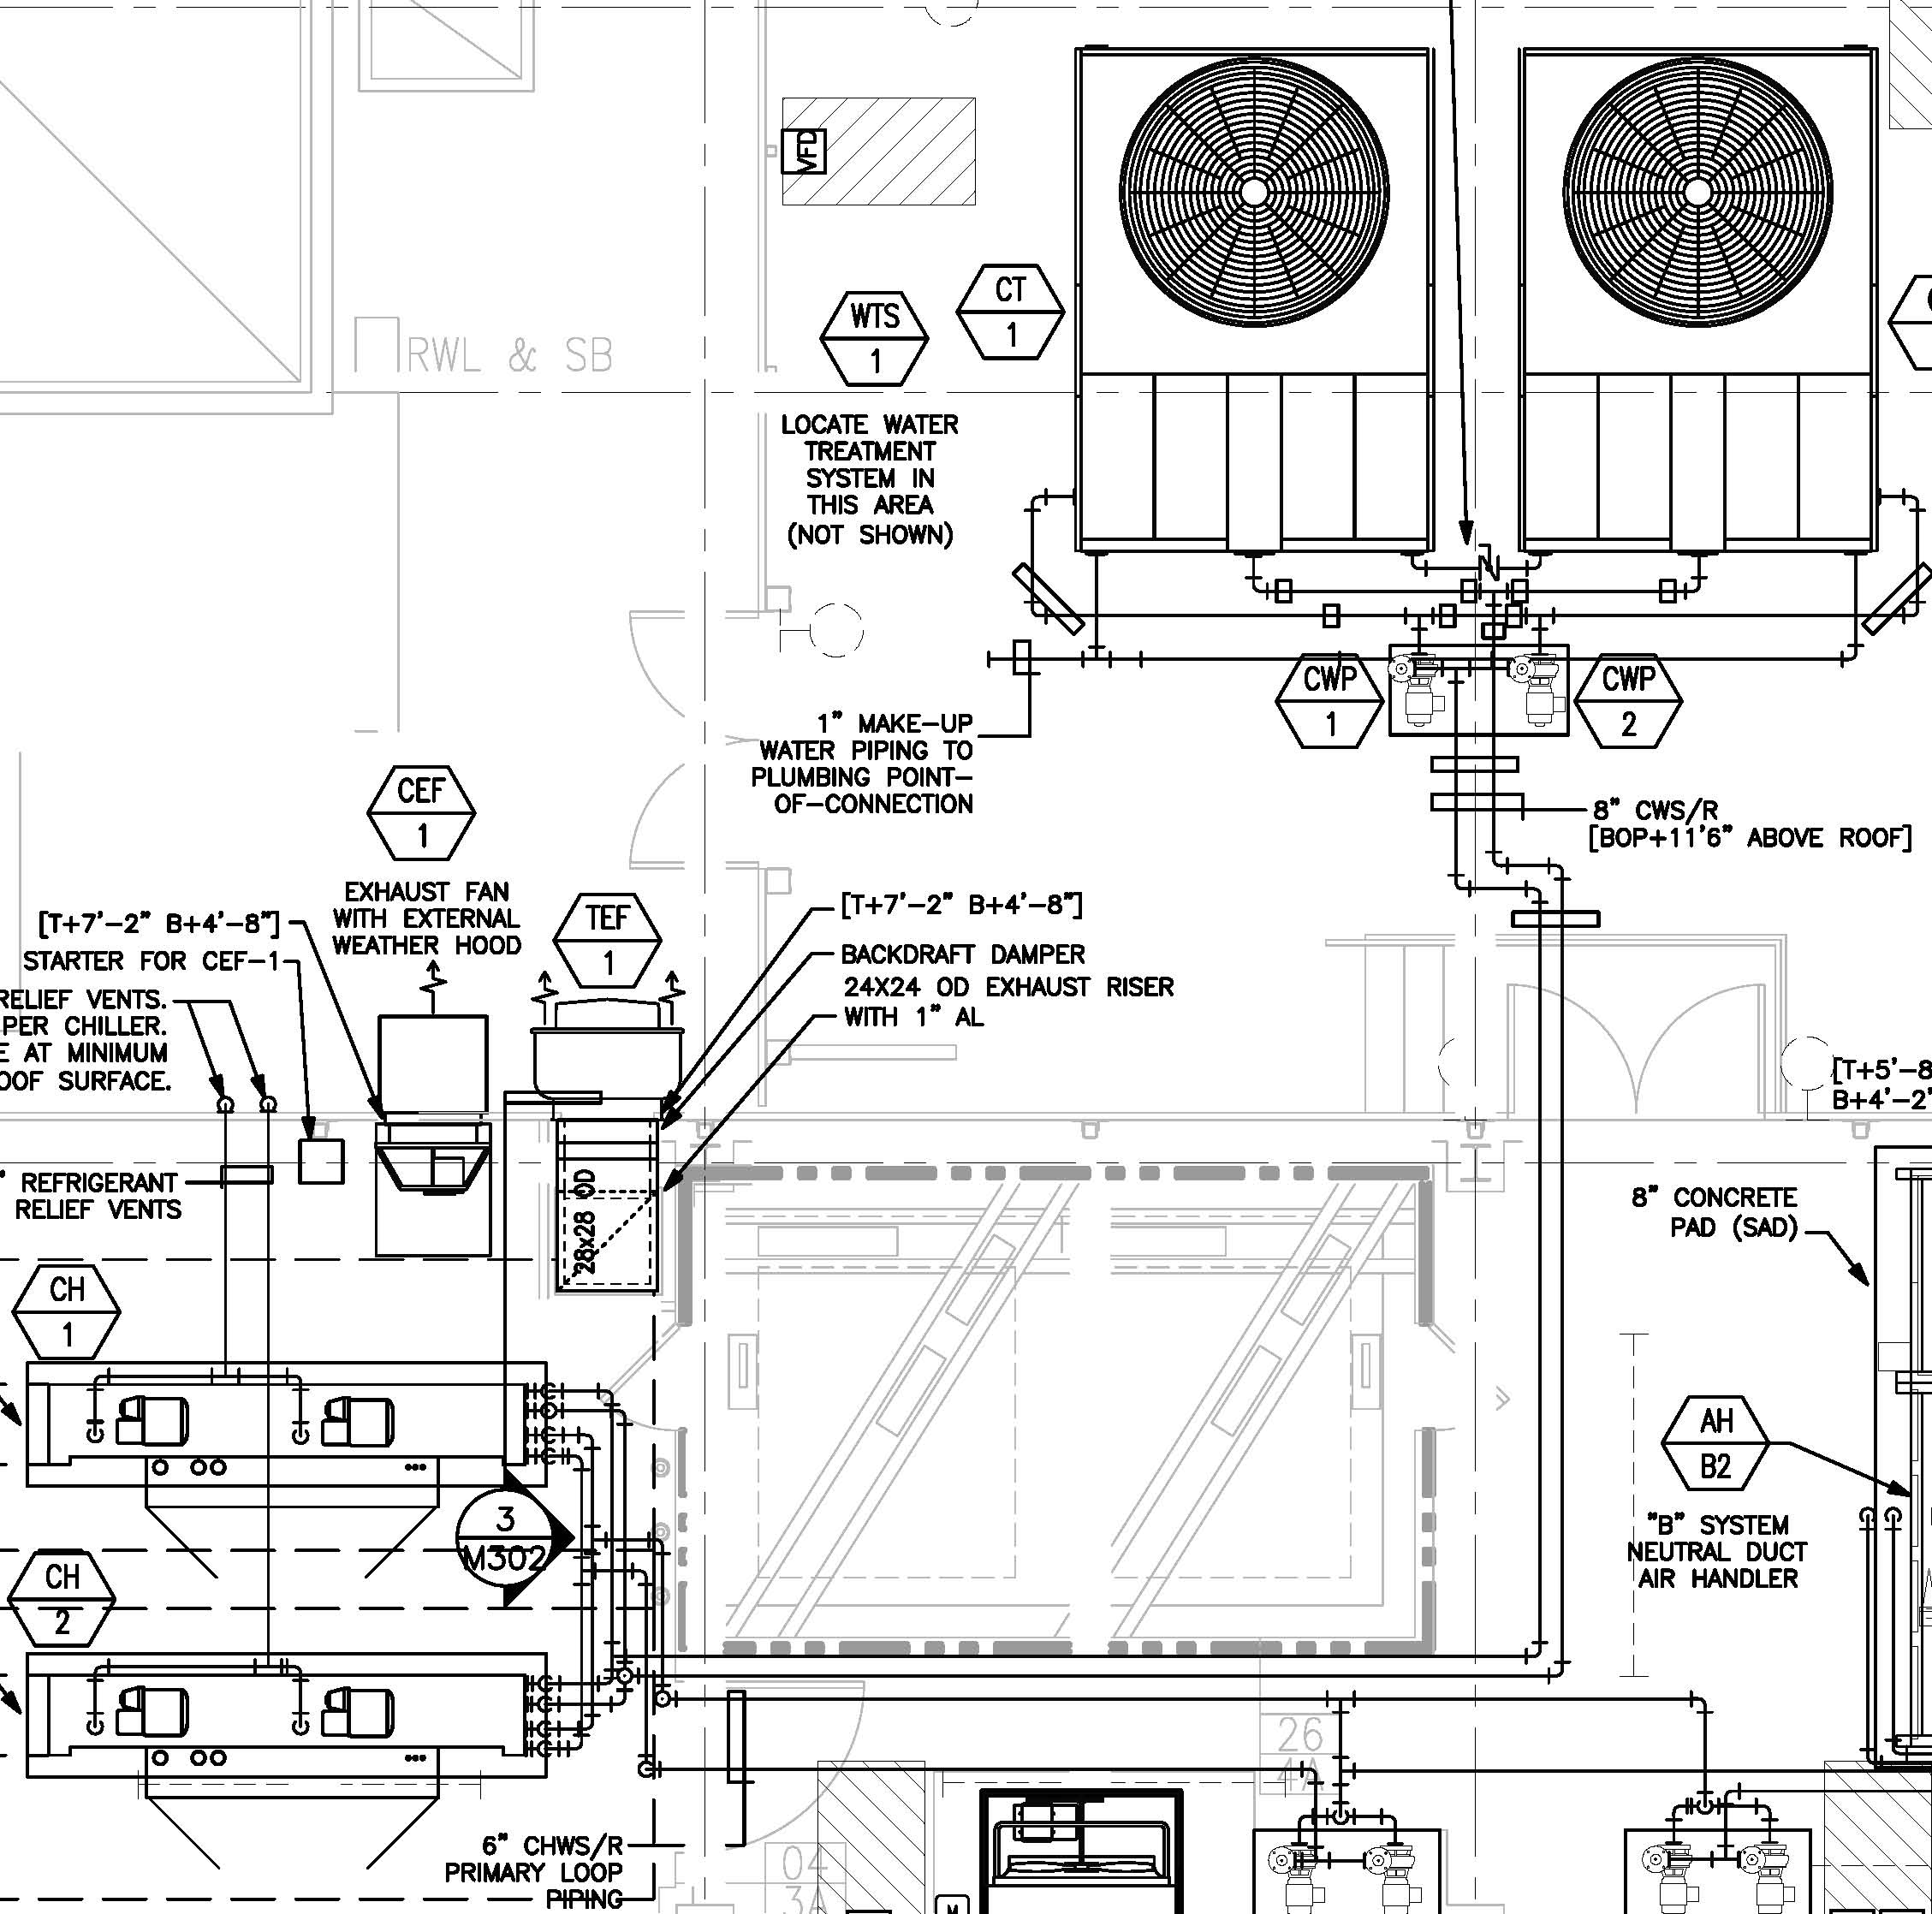 HVAC Condenser Fan as well Xe1000 Trane Contactor Wiring Diagram Wiring Diagrams moreover JM5o 6697 furthermore Goodman Board B18099 23 further York Condensing Unit Wiring Diagram. on trane rooftop ac wiring diagrams